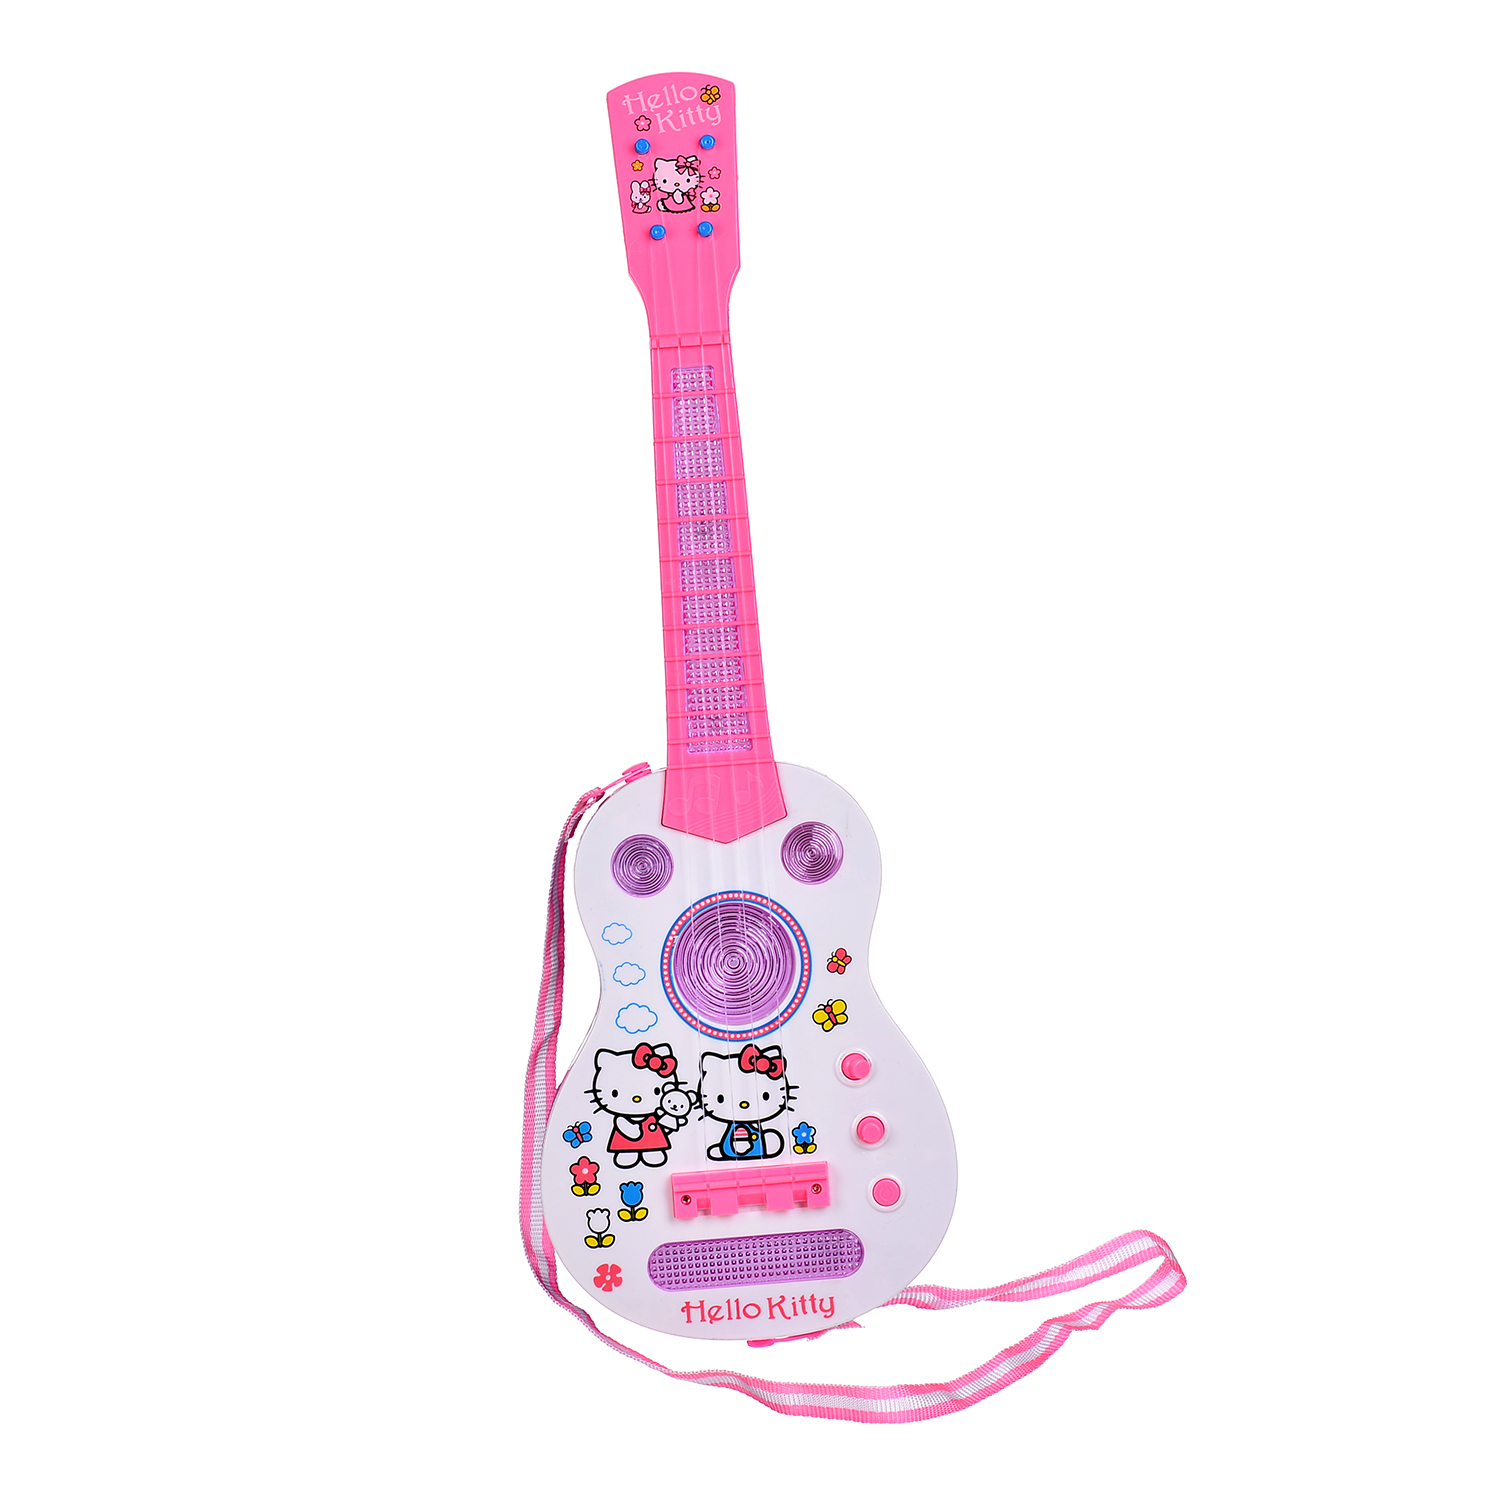 dan guitar dien tu hello kitty lemonshop  (5).jpg